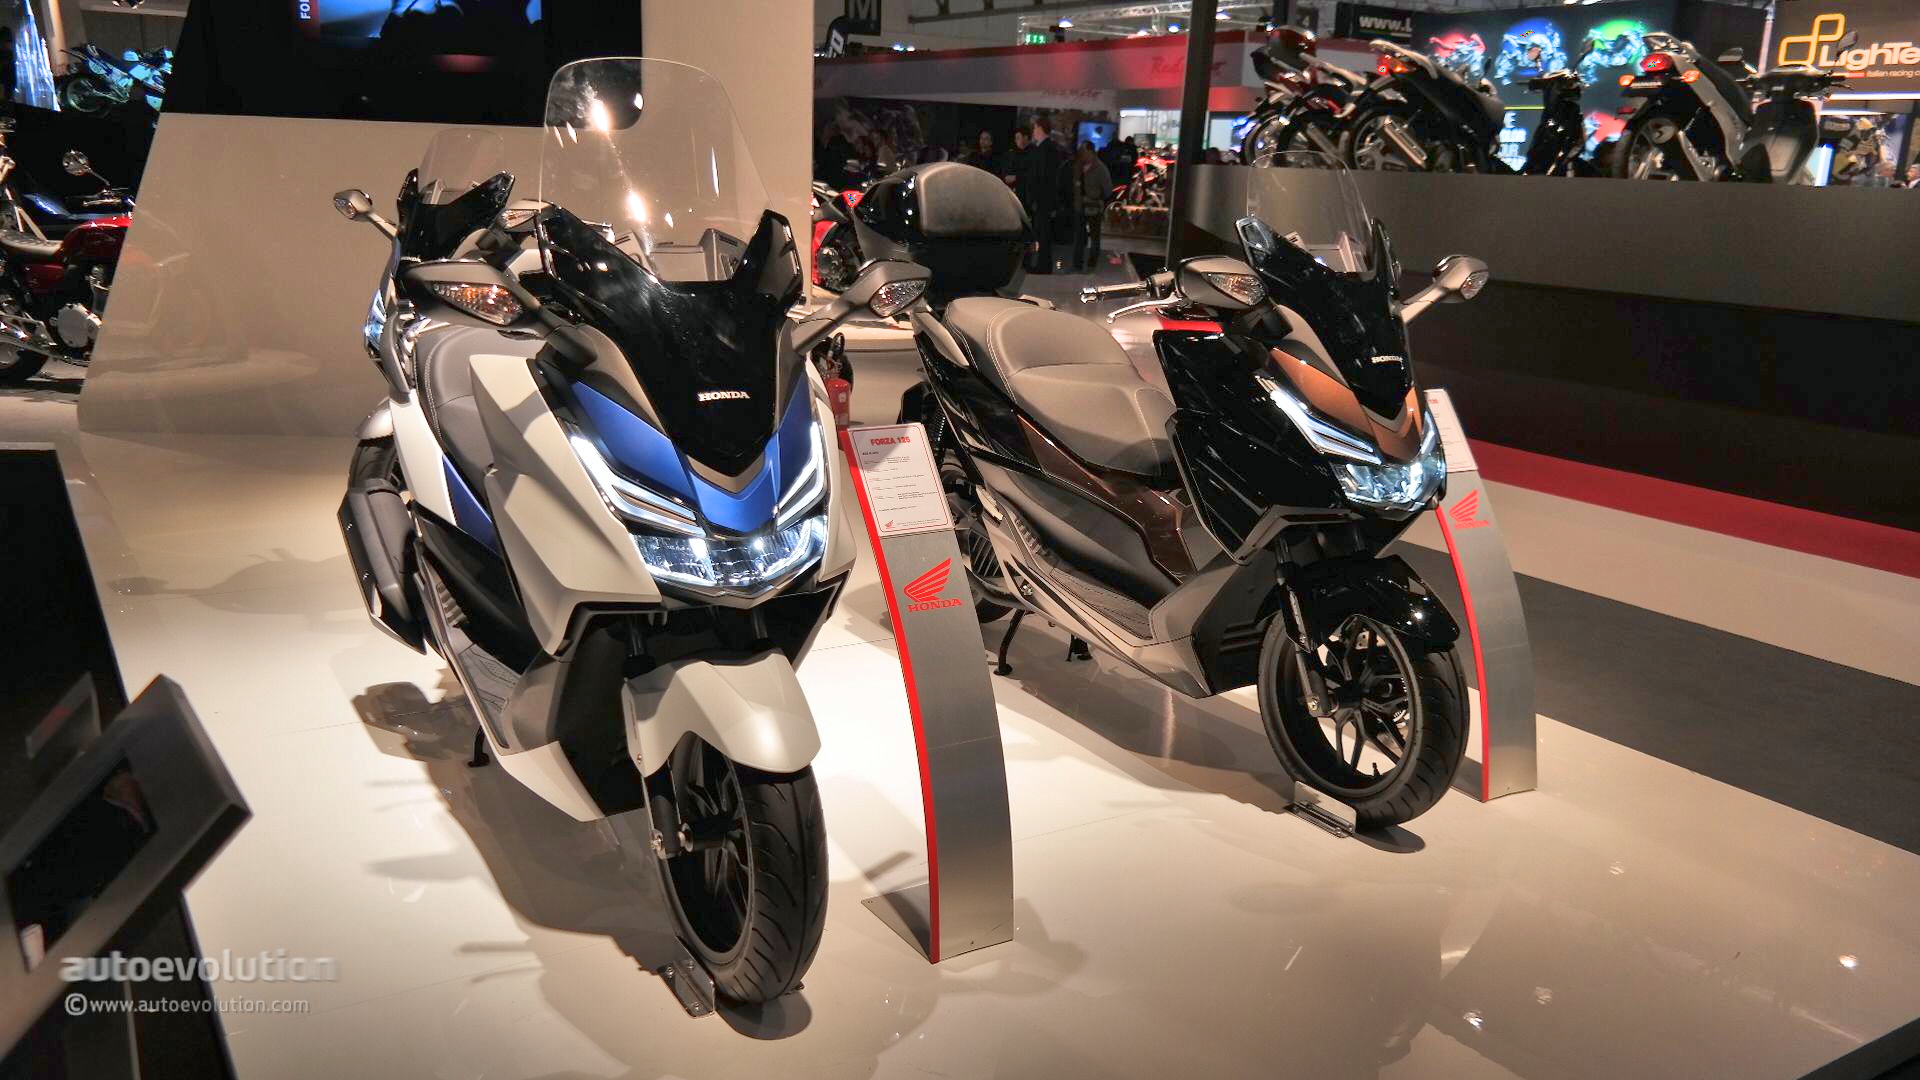 Honda Forza 125 2015 Best Scooter in the World